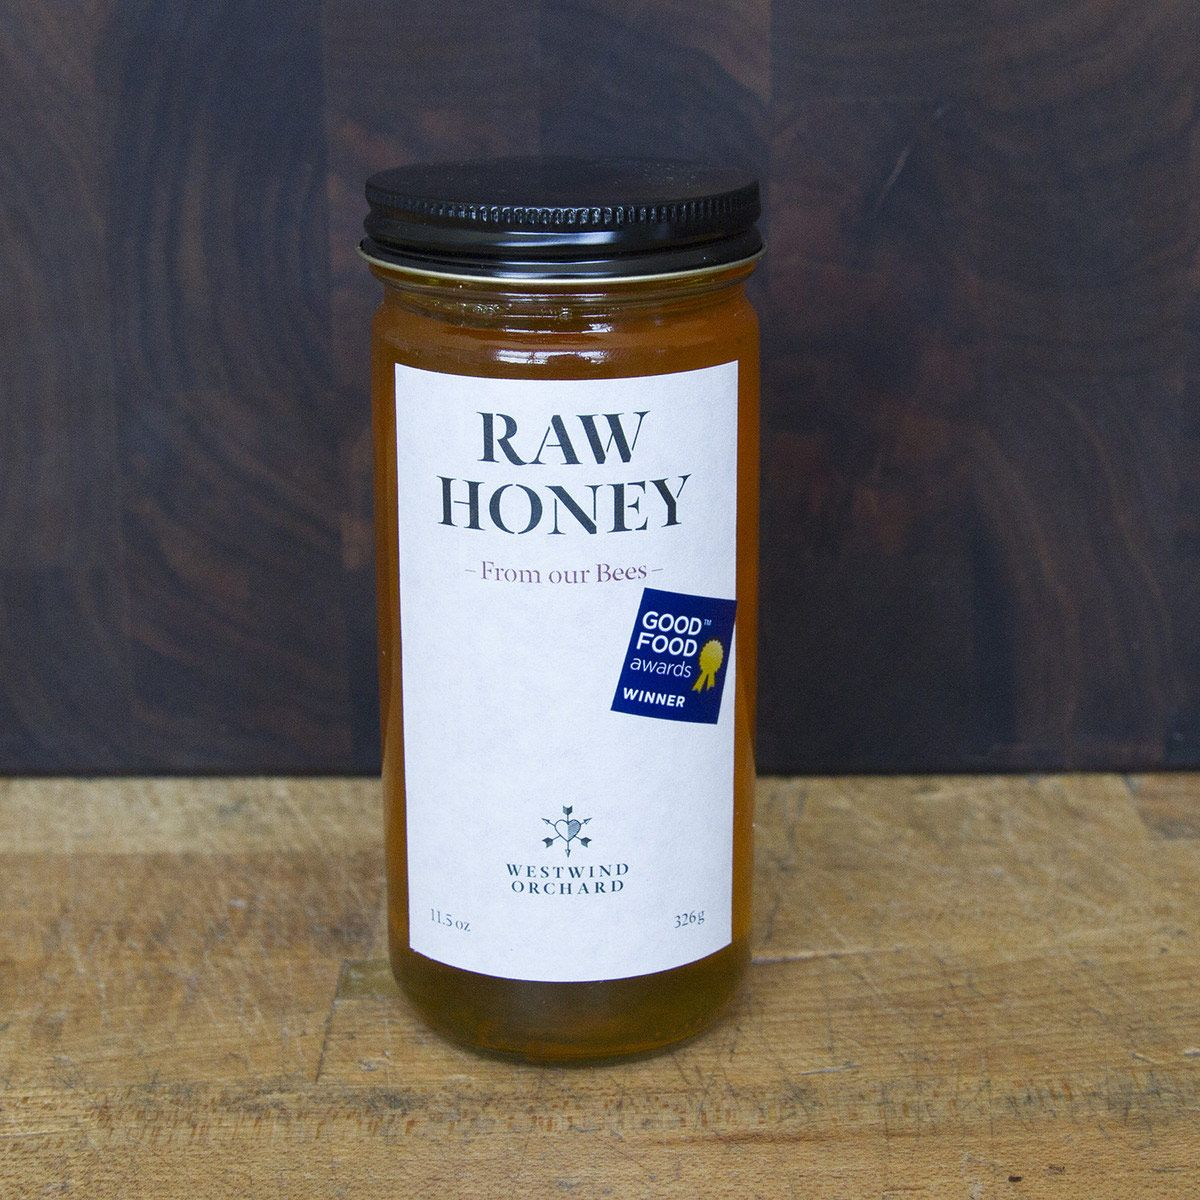 Westwind Orchard Raw Honey